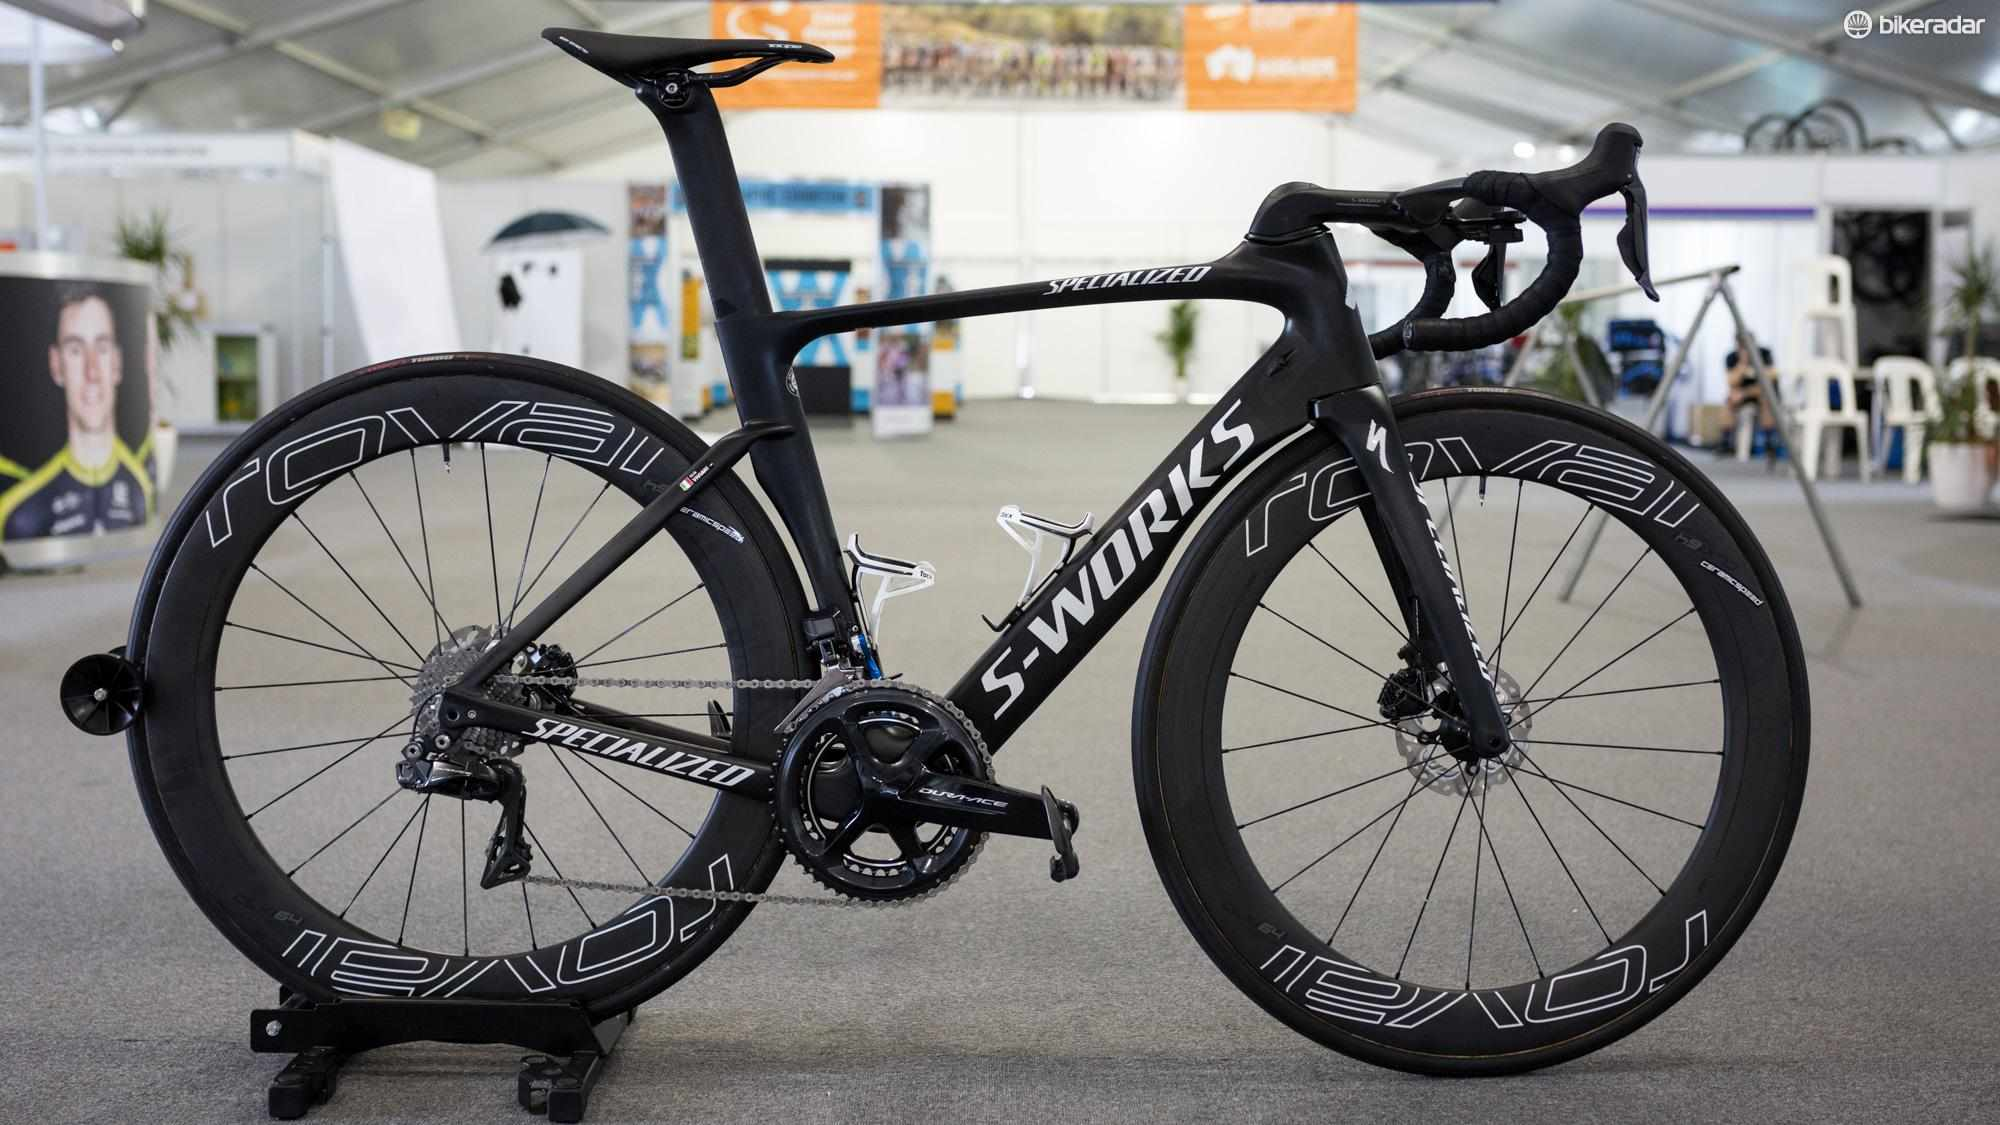 Elia Viviani rode this S-Works Venge ViAS to victory in stage 3 of the Tour Down Under